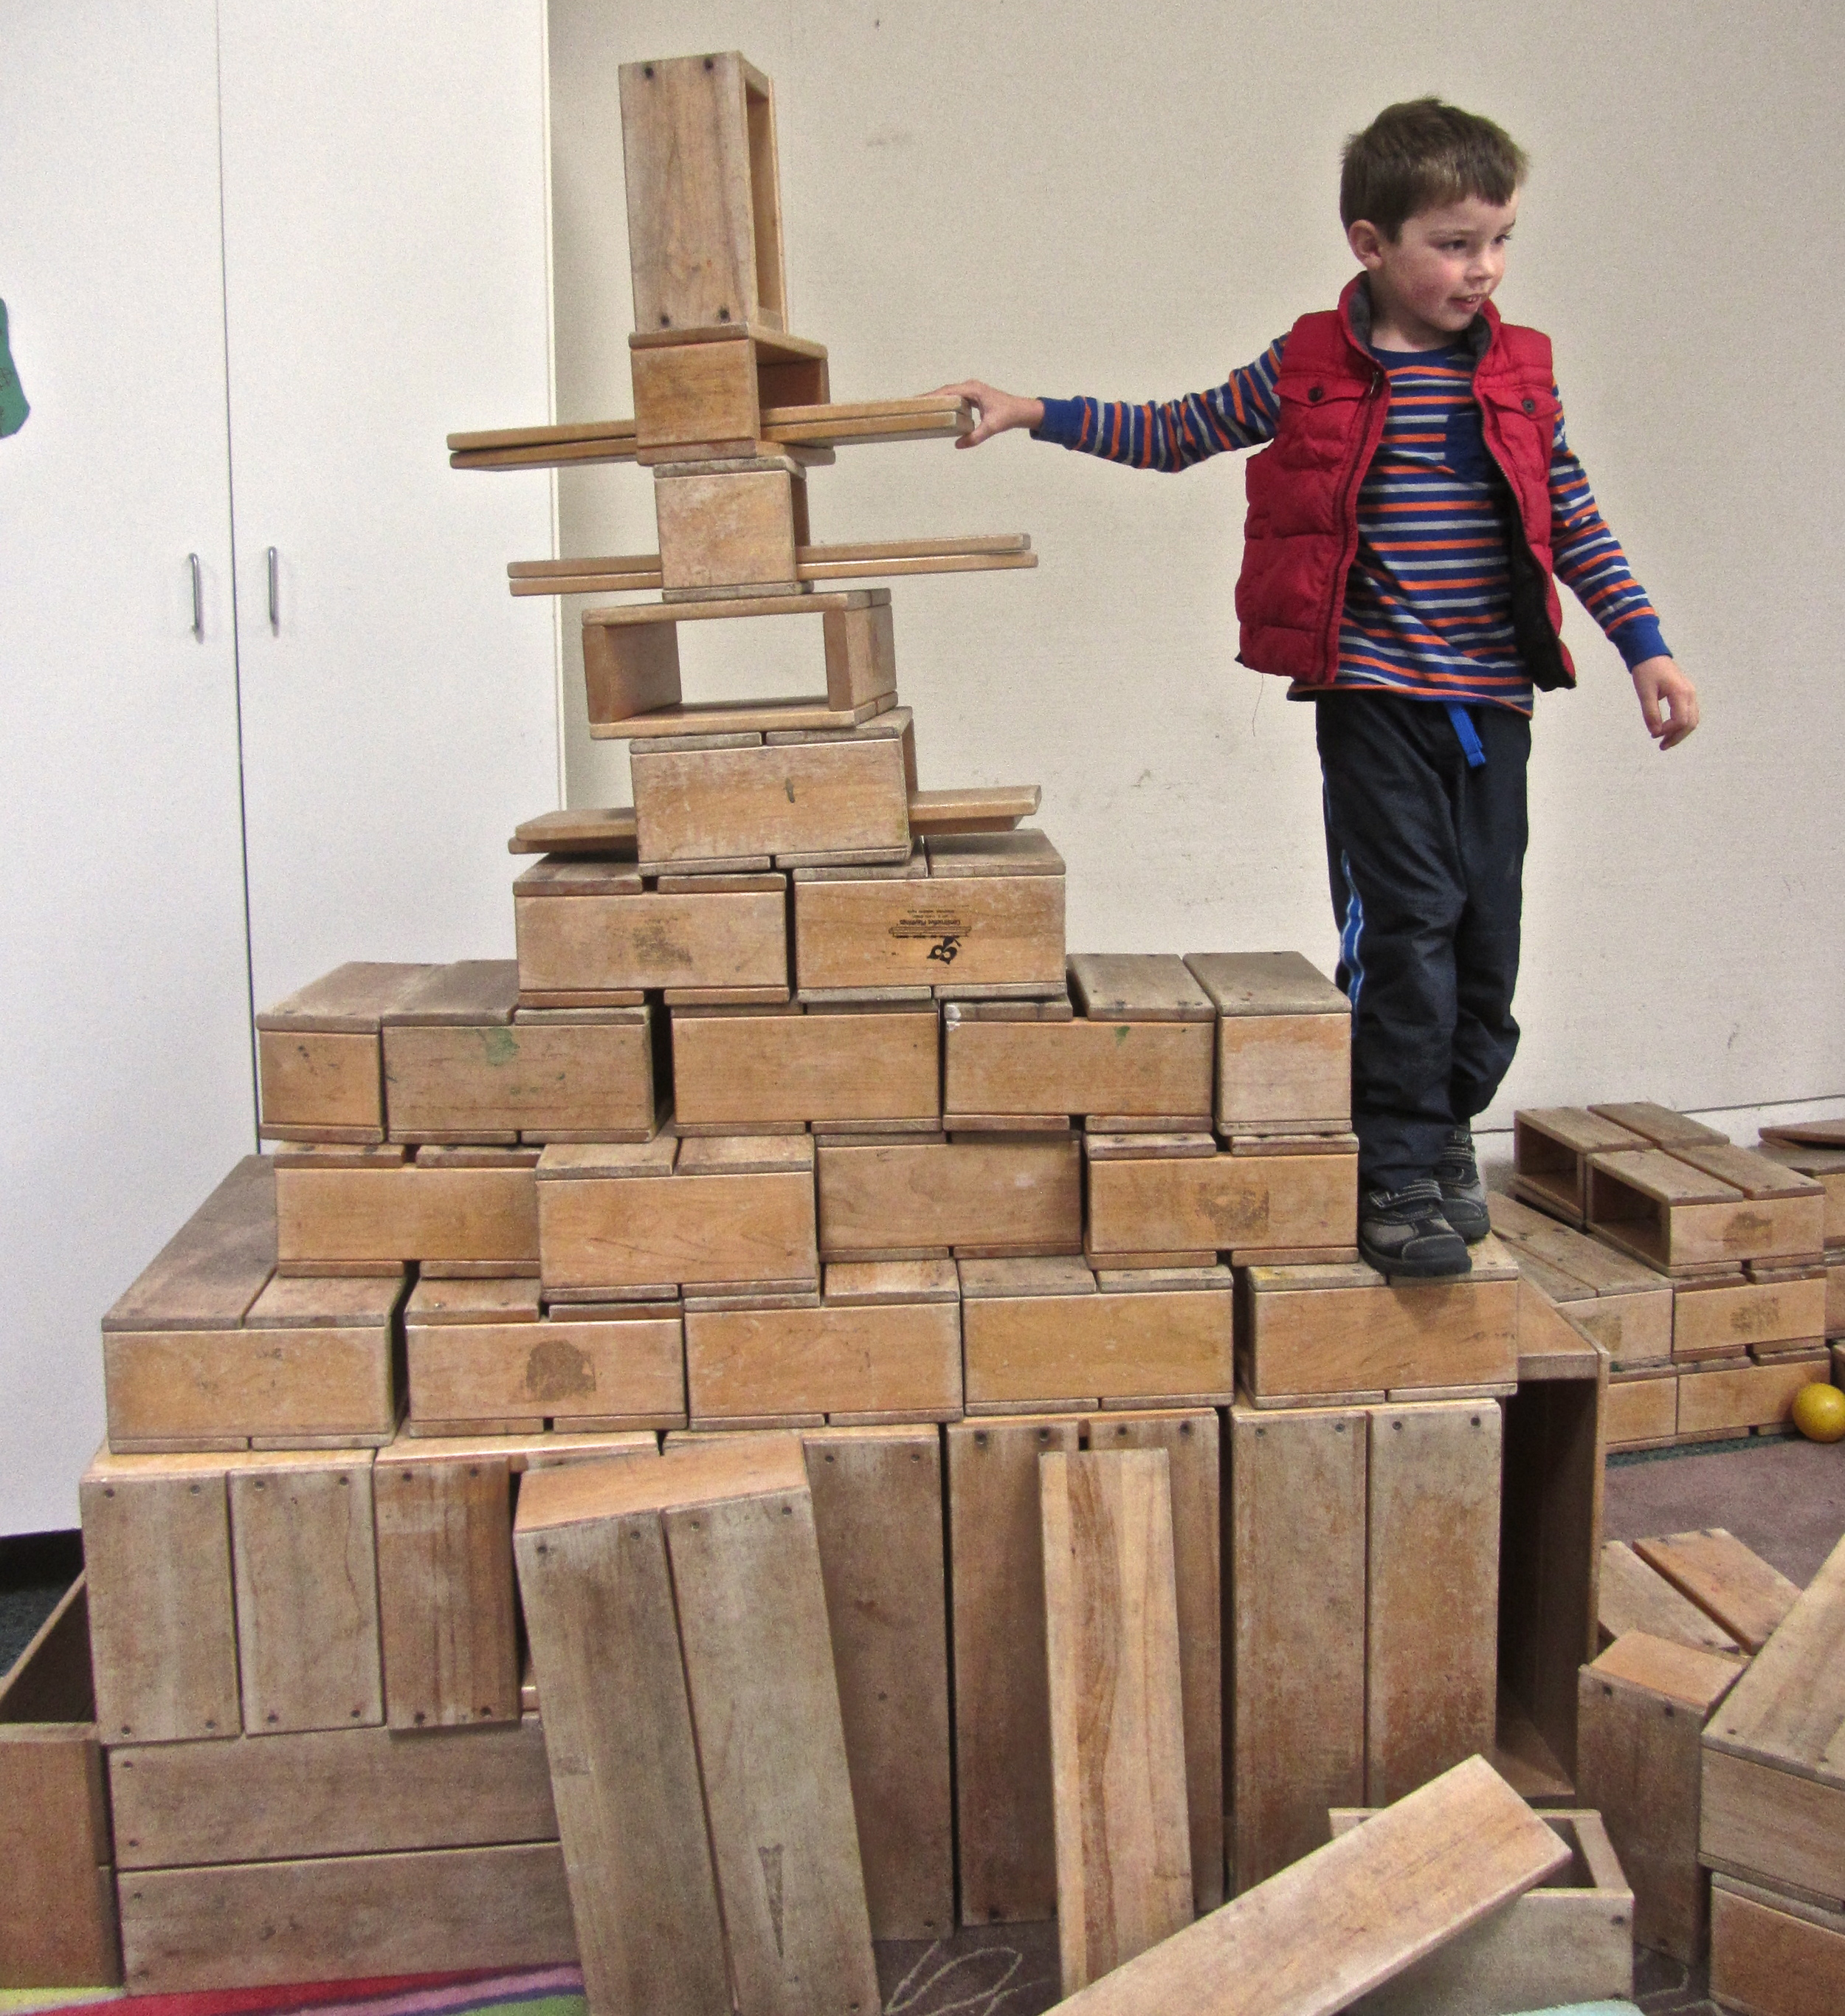 The large scale and weight of these blocks make them a great gross motor challenge and help increase spatial awareness.